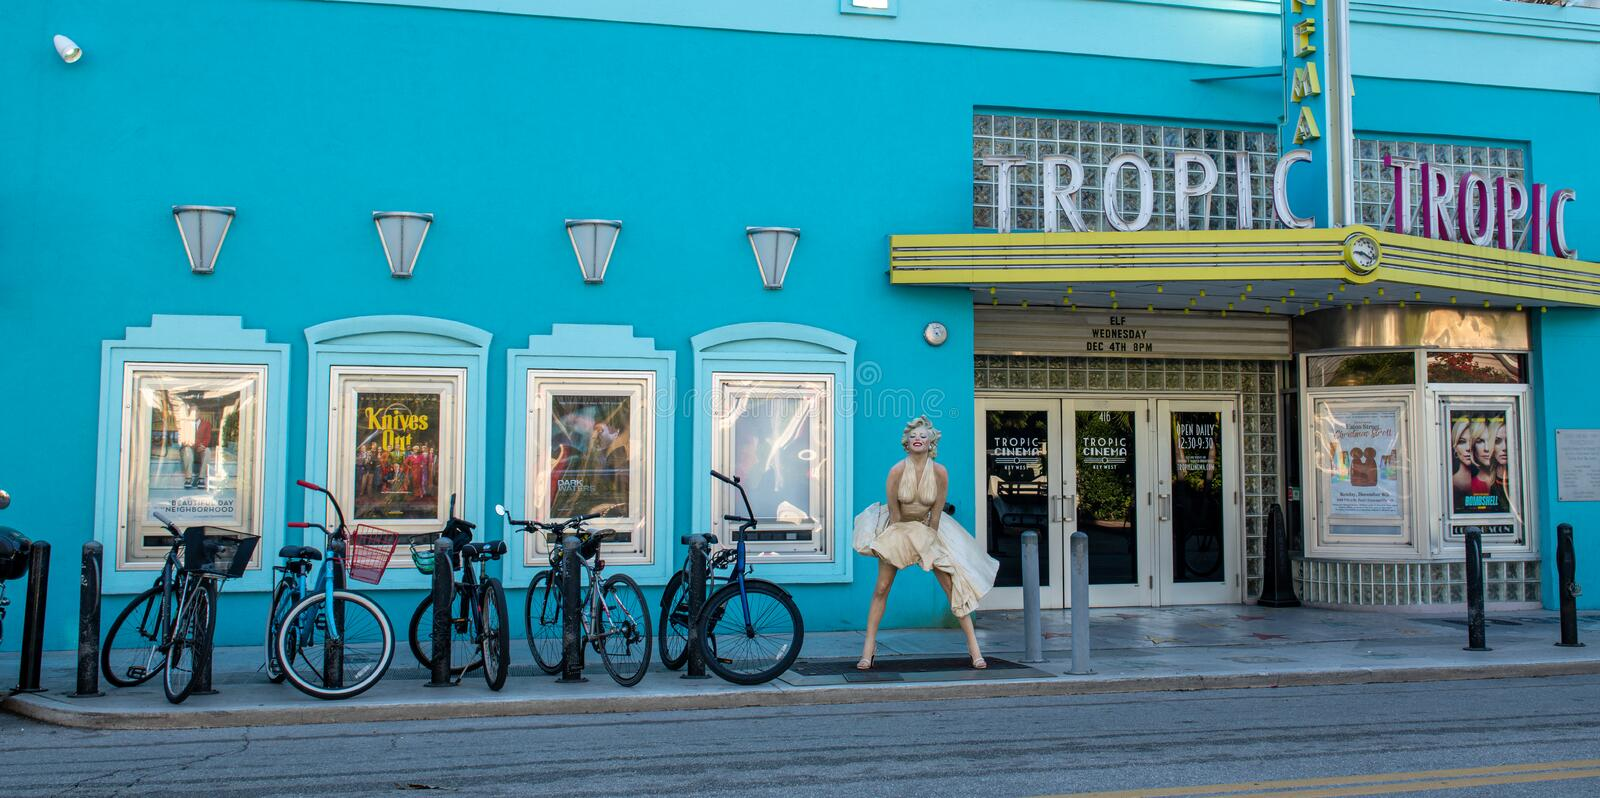 Tropic Cinema 416 Eaton St.Key West, FL 33040. Is a historic theater royalty free stock photography